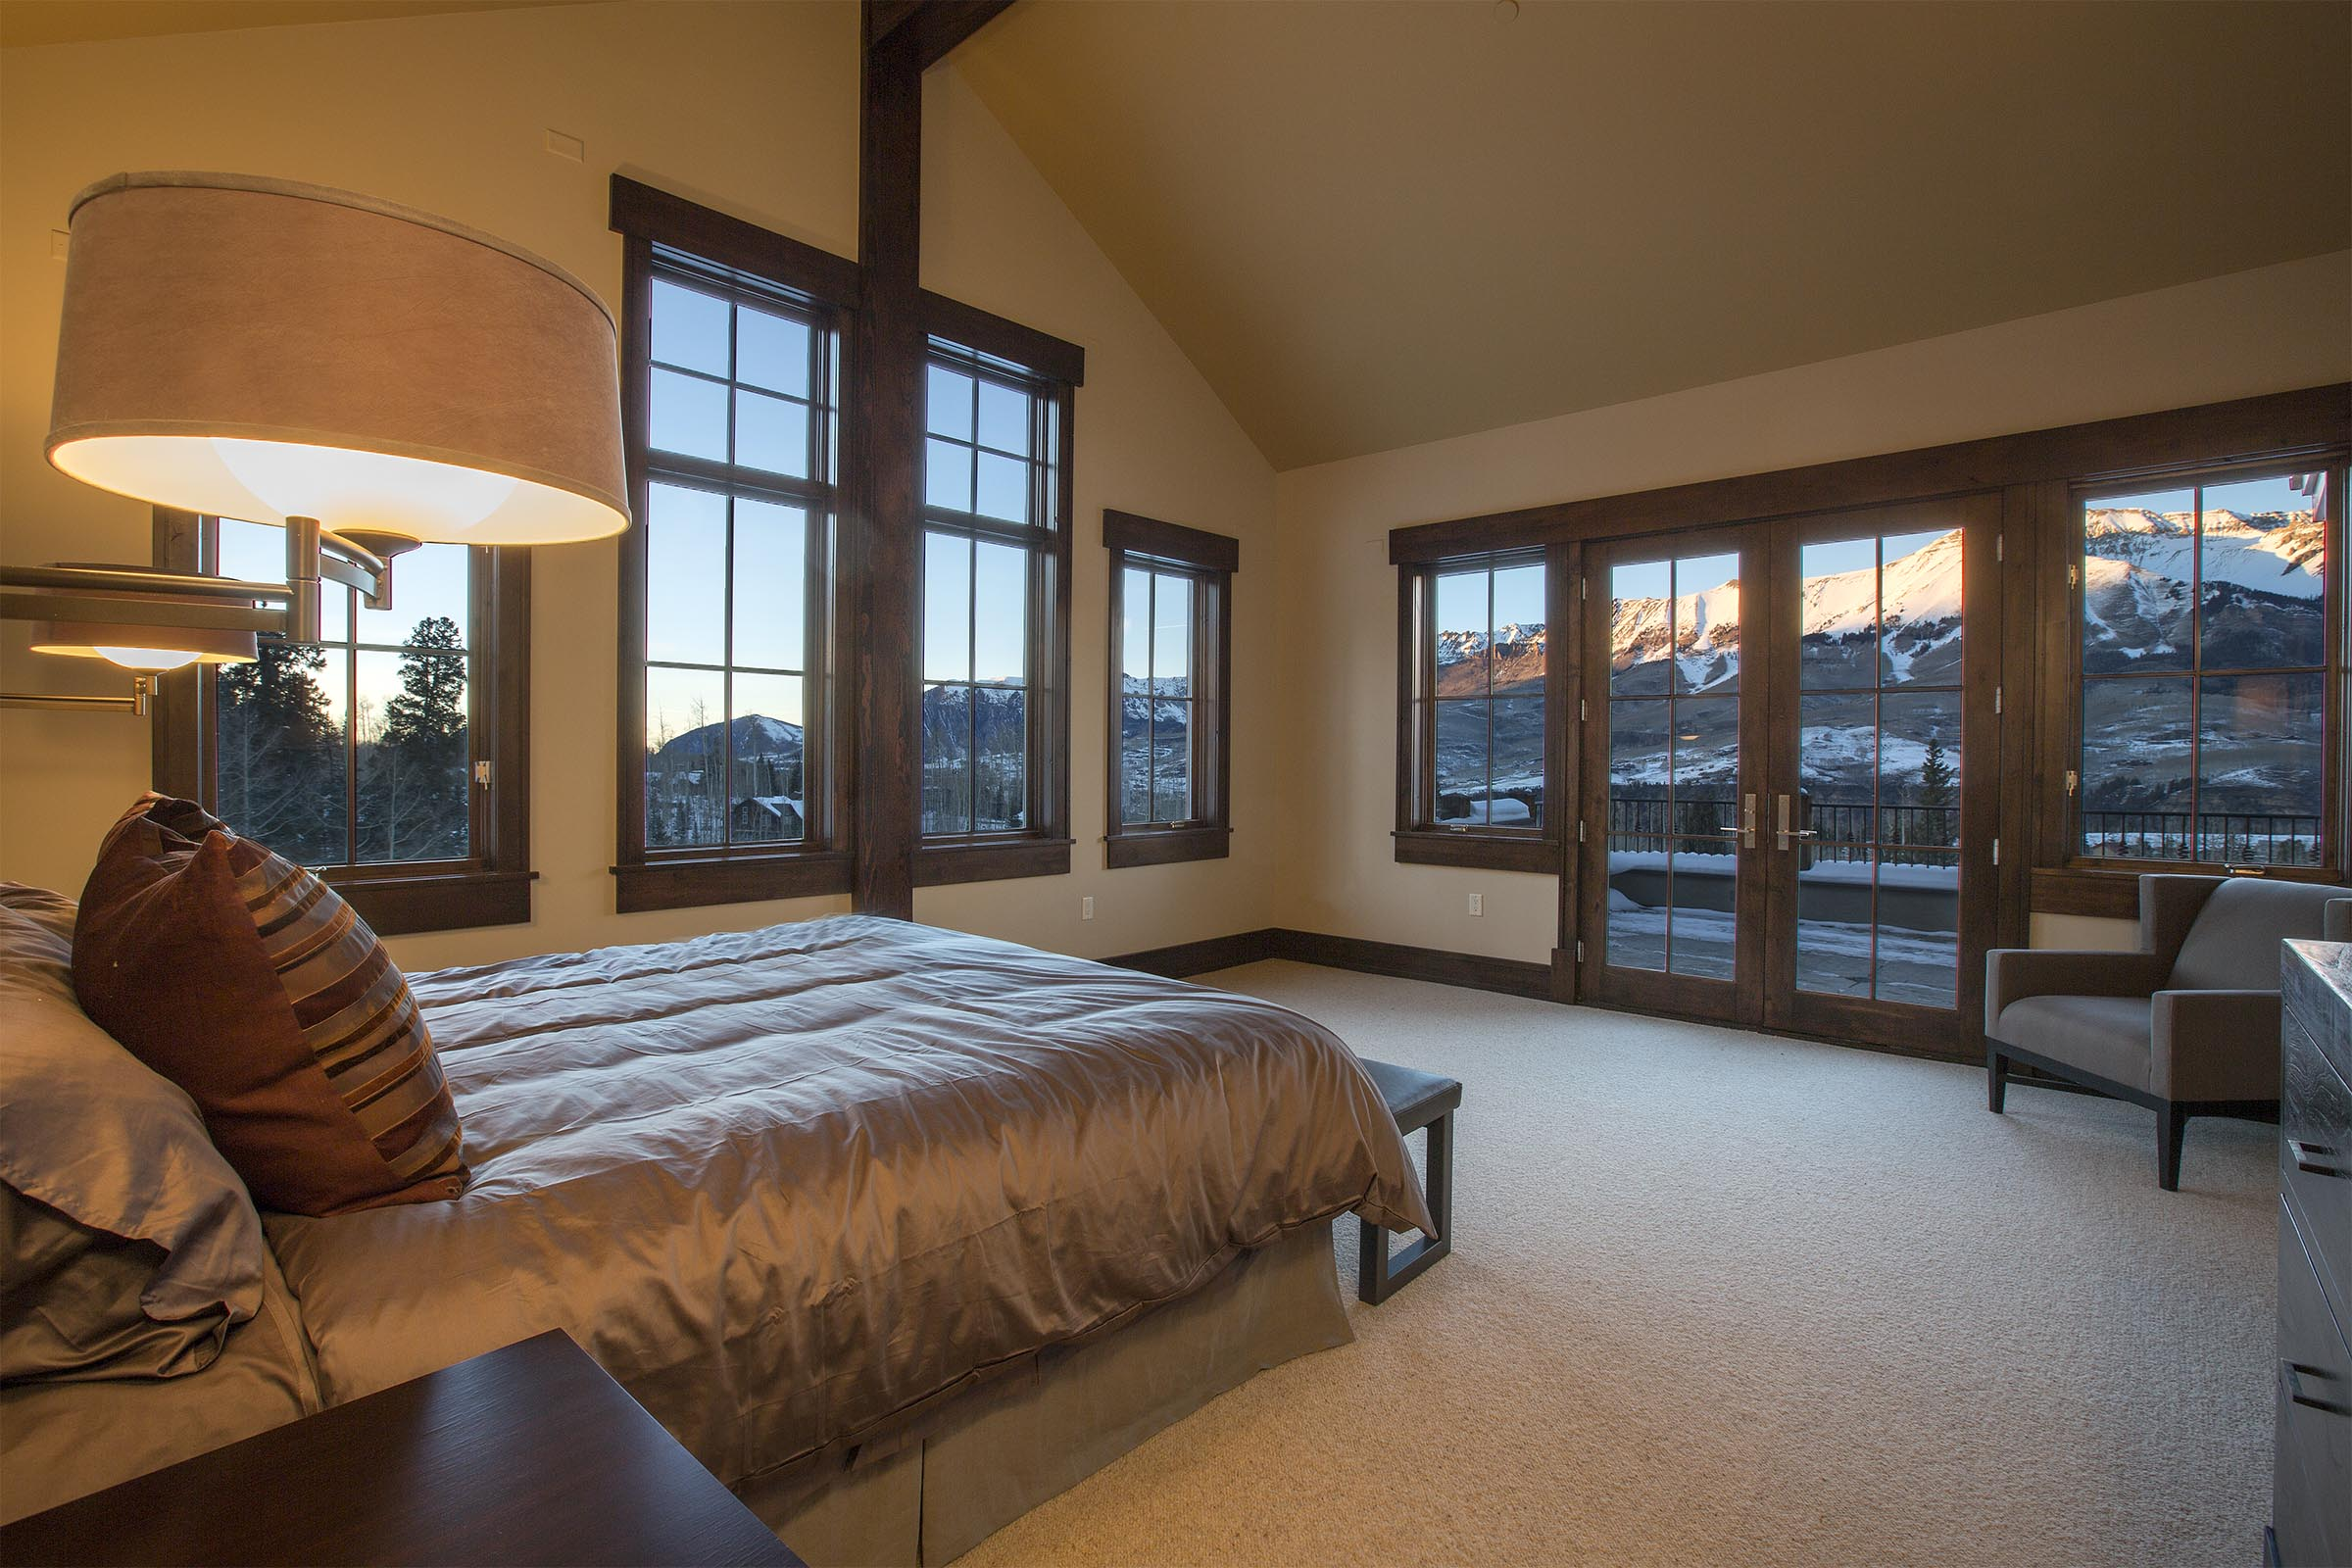 Condominium for Sale at Elkstone 21, Unit 401 500 Mountain Village Blvd Unit 401 Telluride, Colorado, 81435 United States